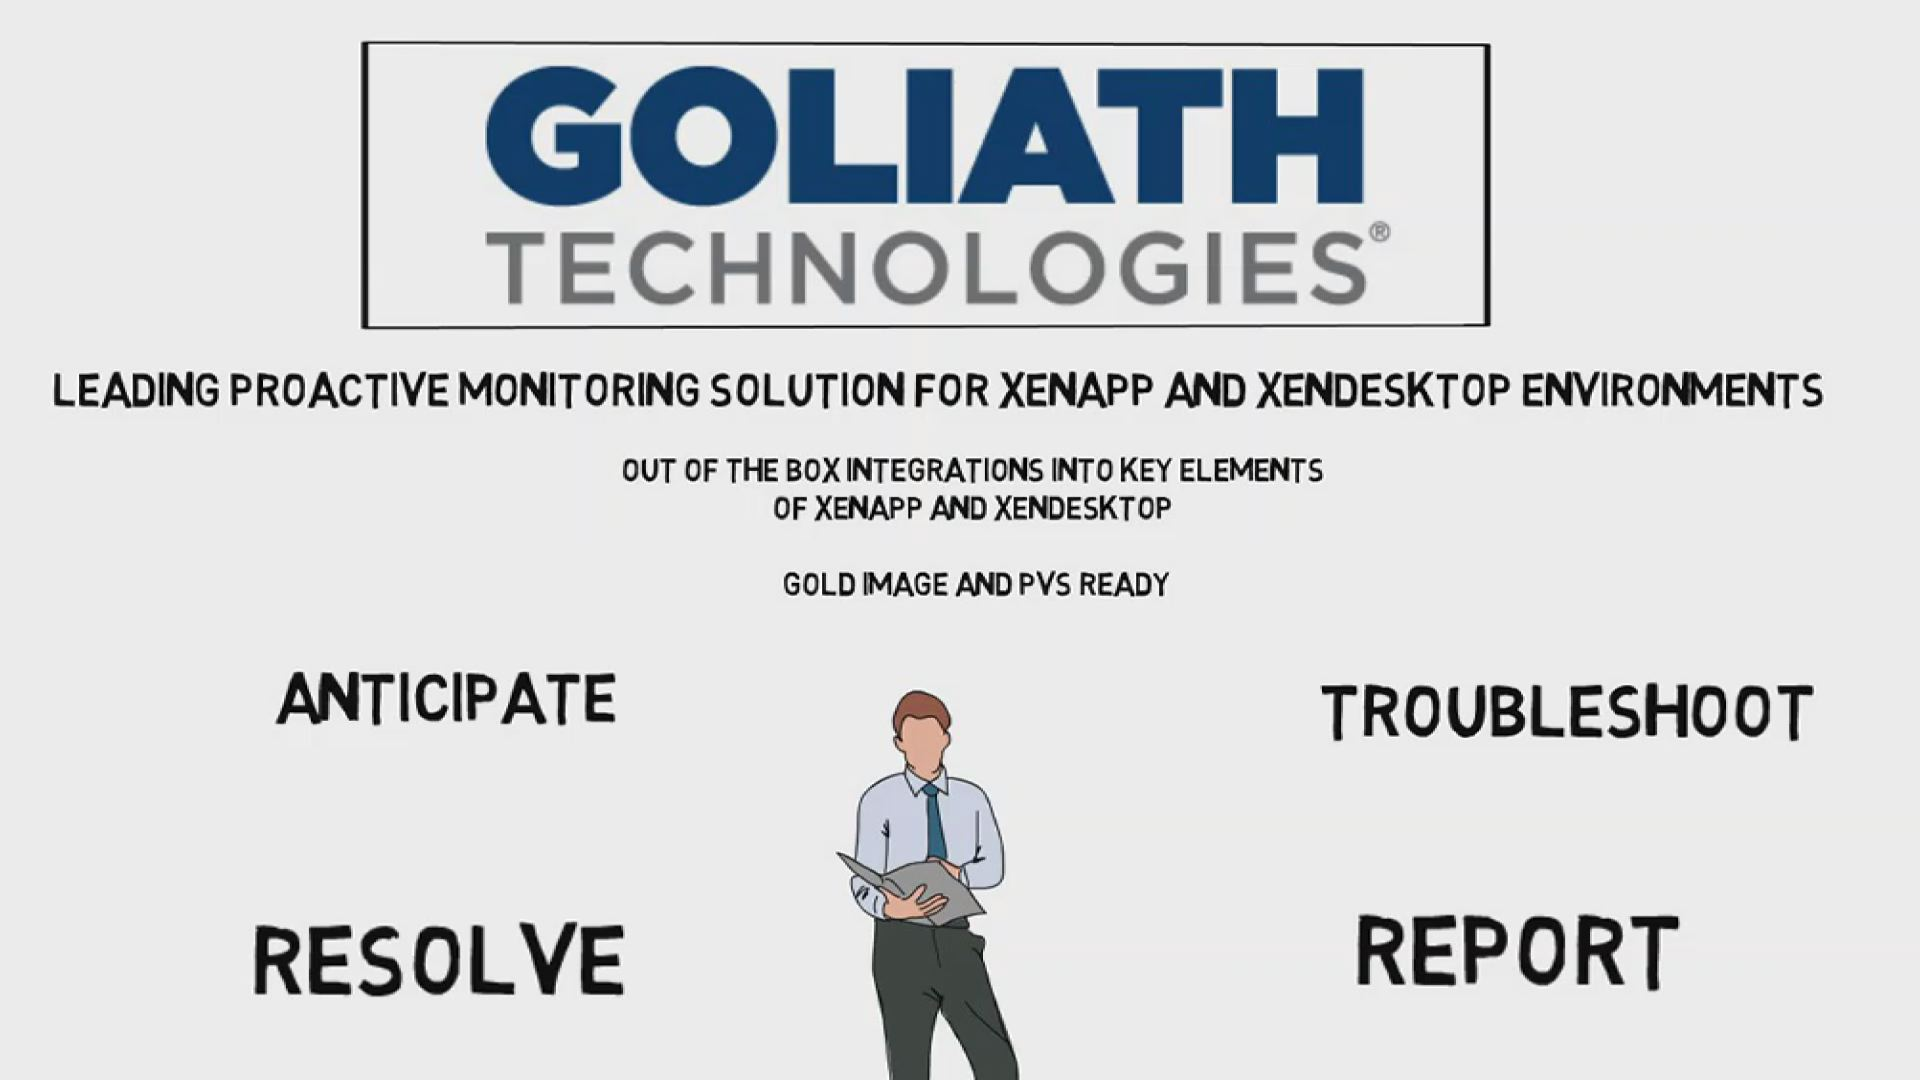 Motion Graphics for Goliath Technologies